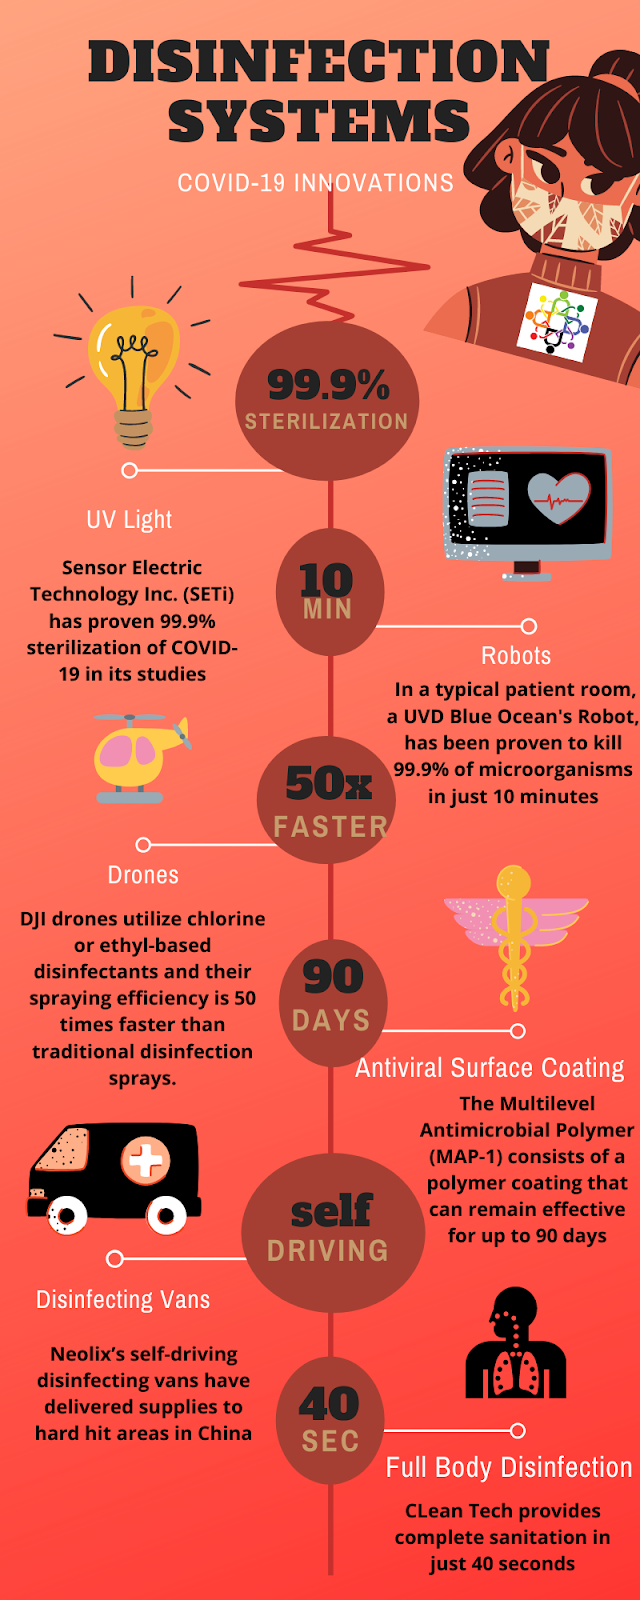 Disinfection systems innovation and technology infographic for Humanitrack Epidemic Response Quest